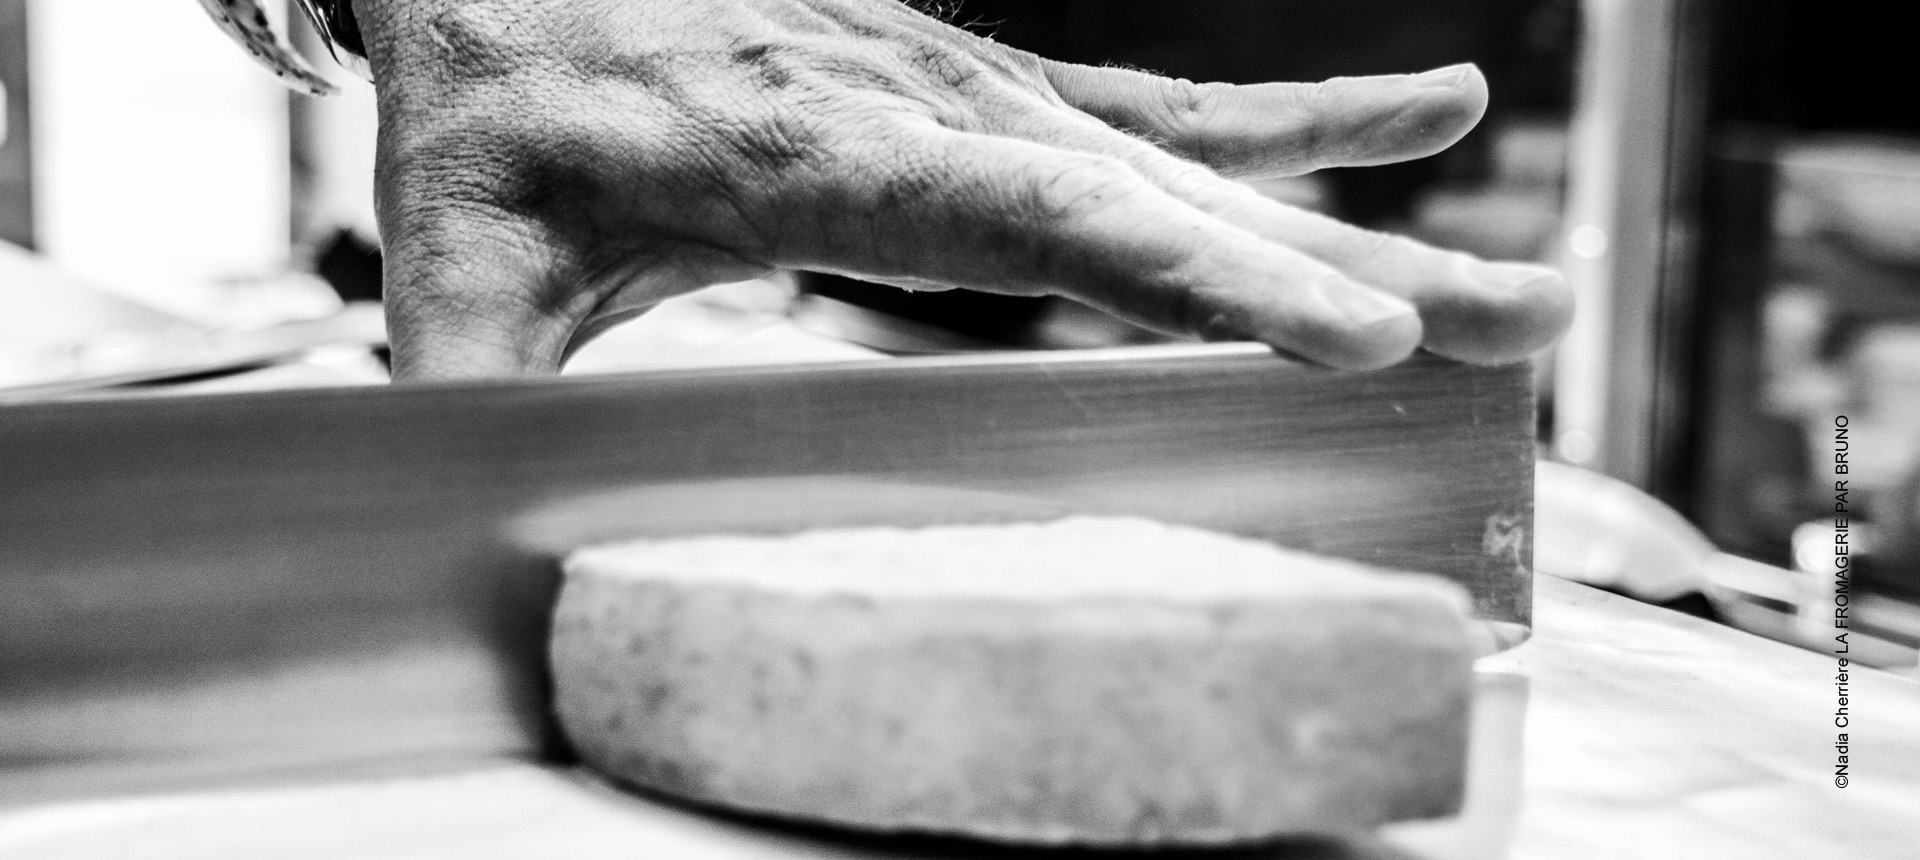 fromagerie bruno brive